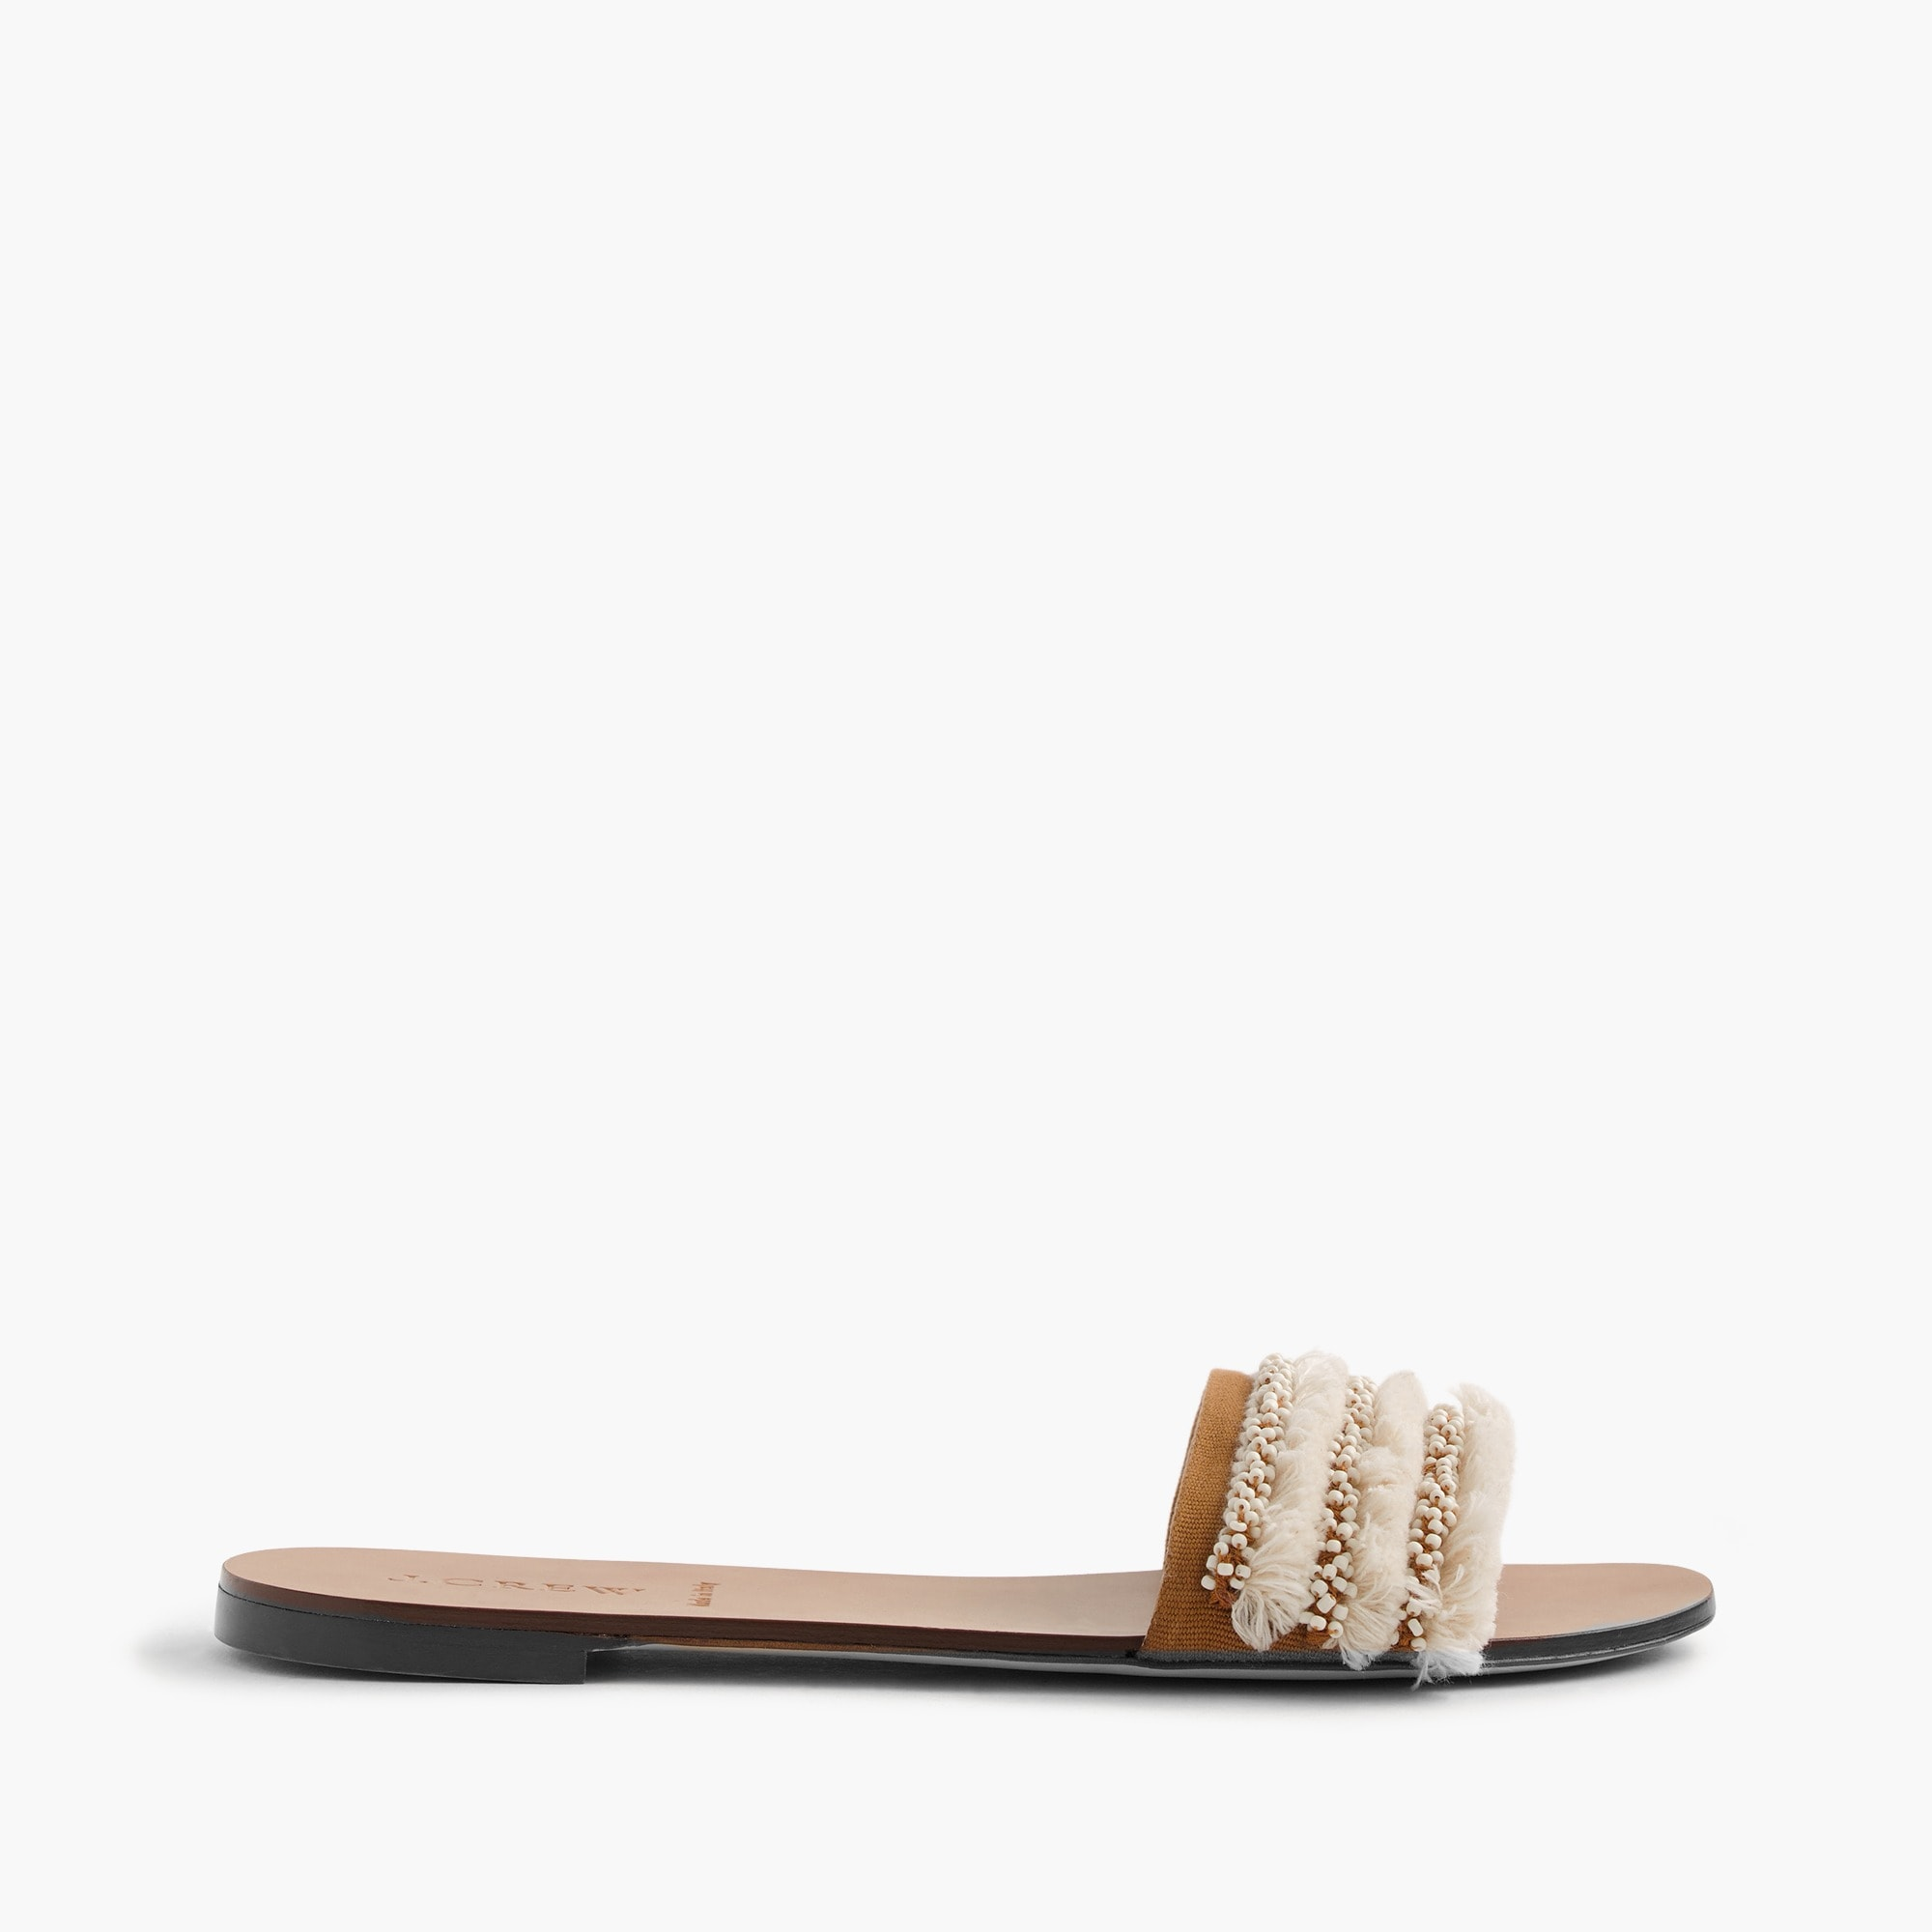 embellished slides : women sandals